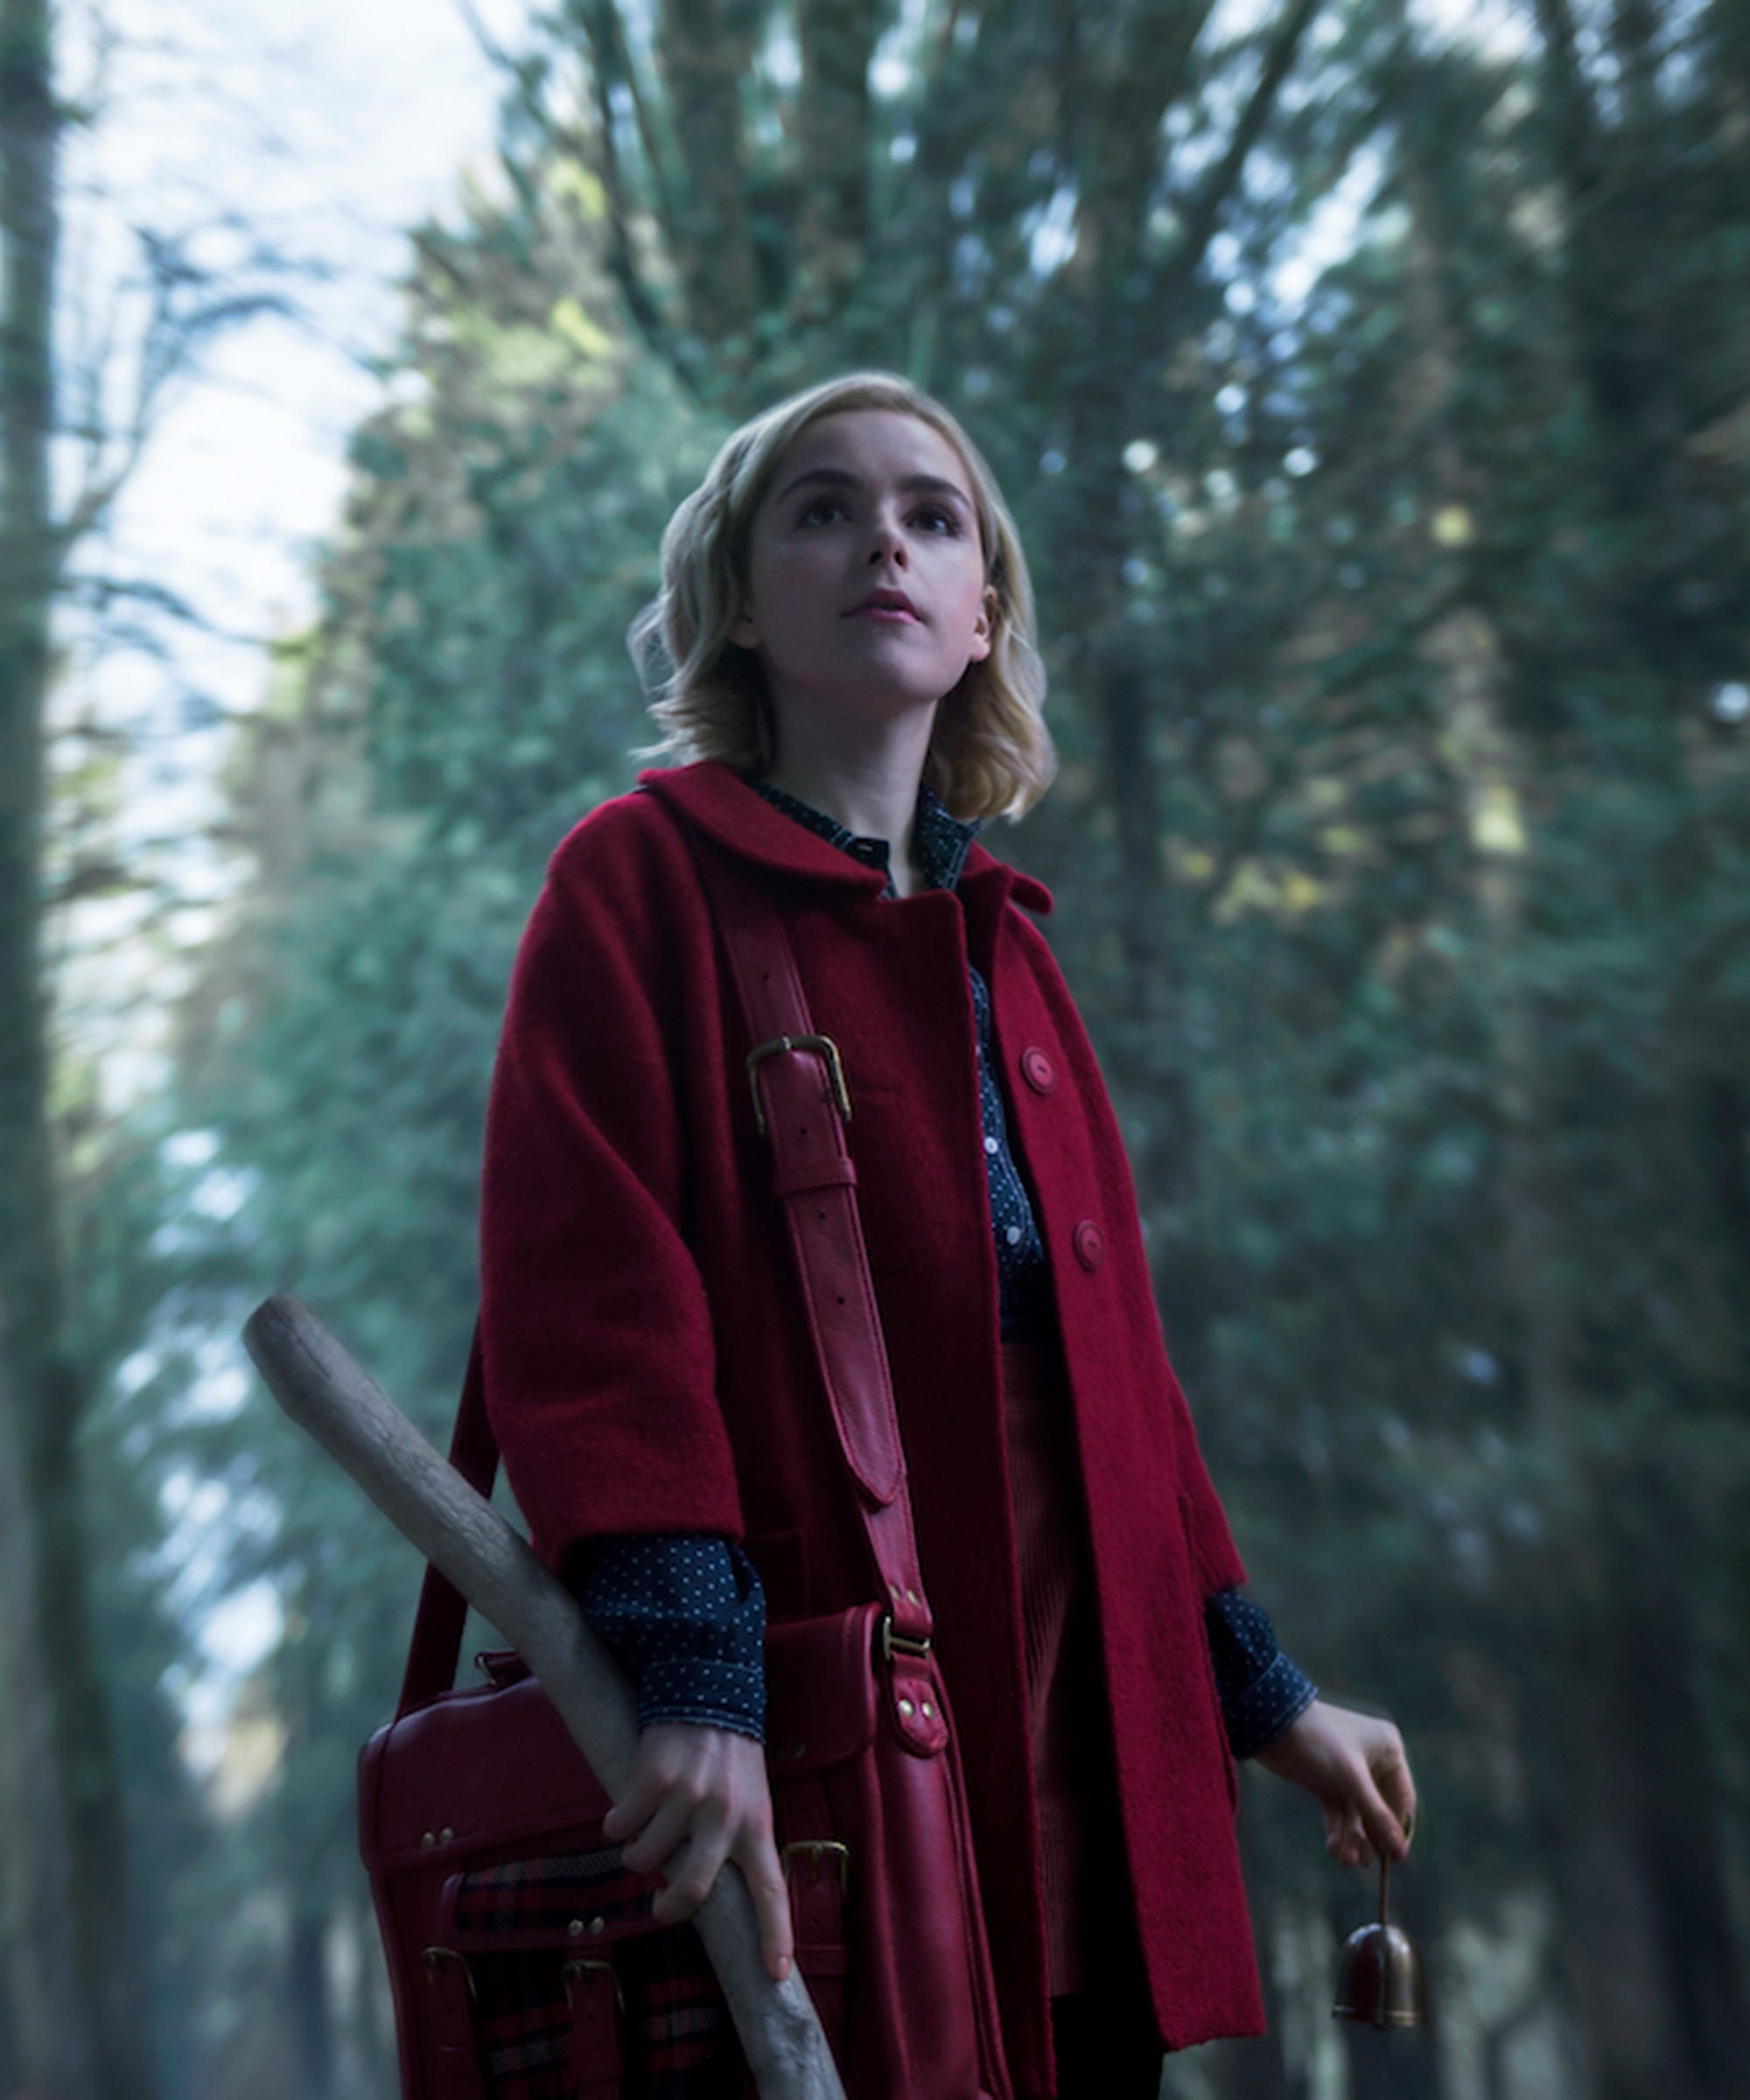 Here's How Your Coven Can Dress Up As Chilling Adventures Of Sabrina For Halloween